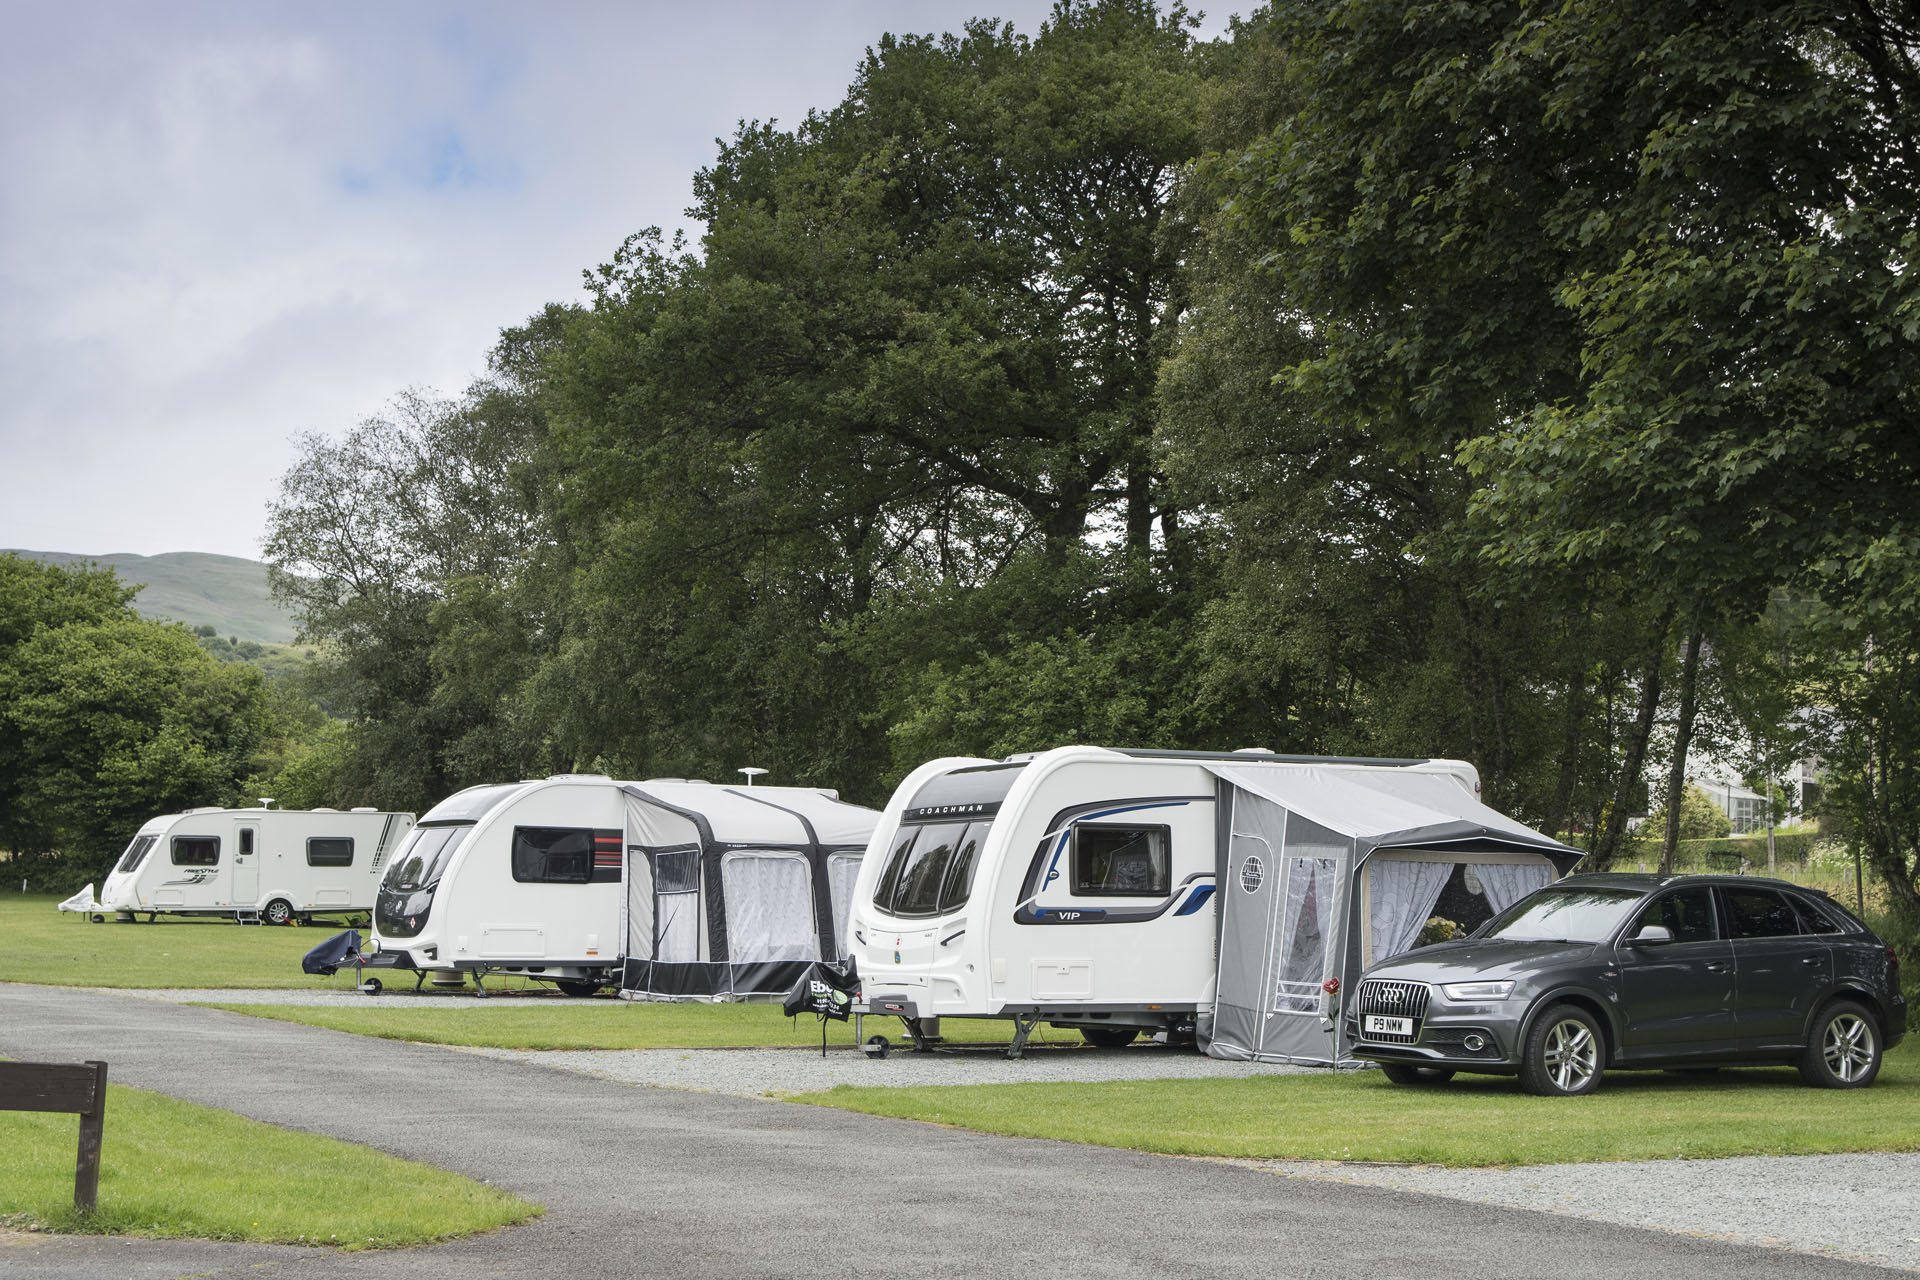 Slingsby - Camping and Caravanning Club Site - The Camping